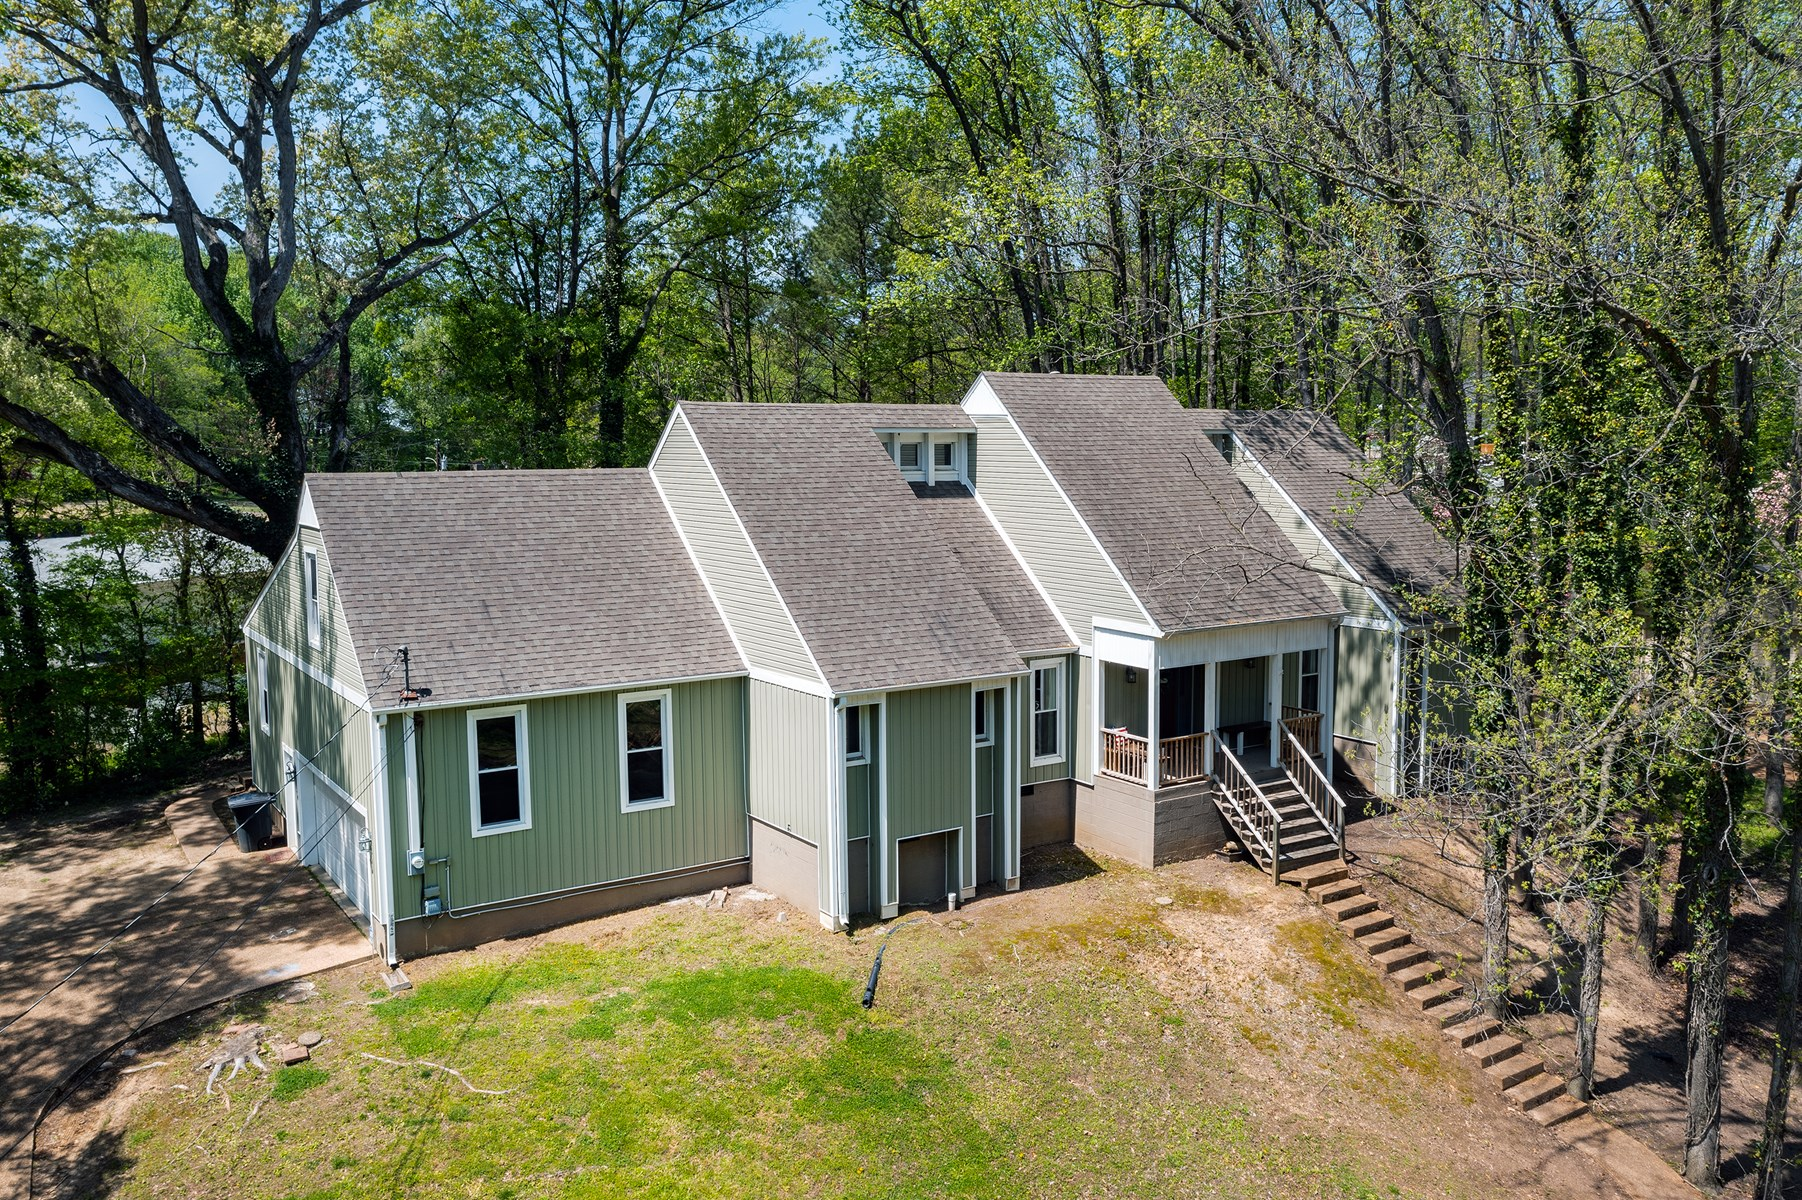 Spacious 5BR Home for Sale - Wooded Lot in Dyersburg, TN